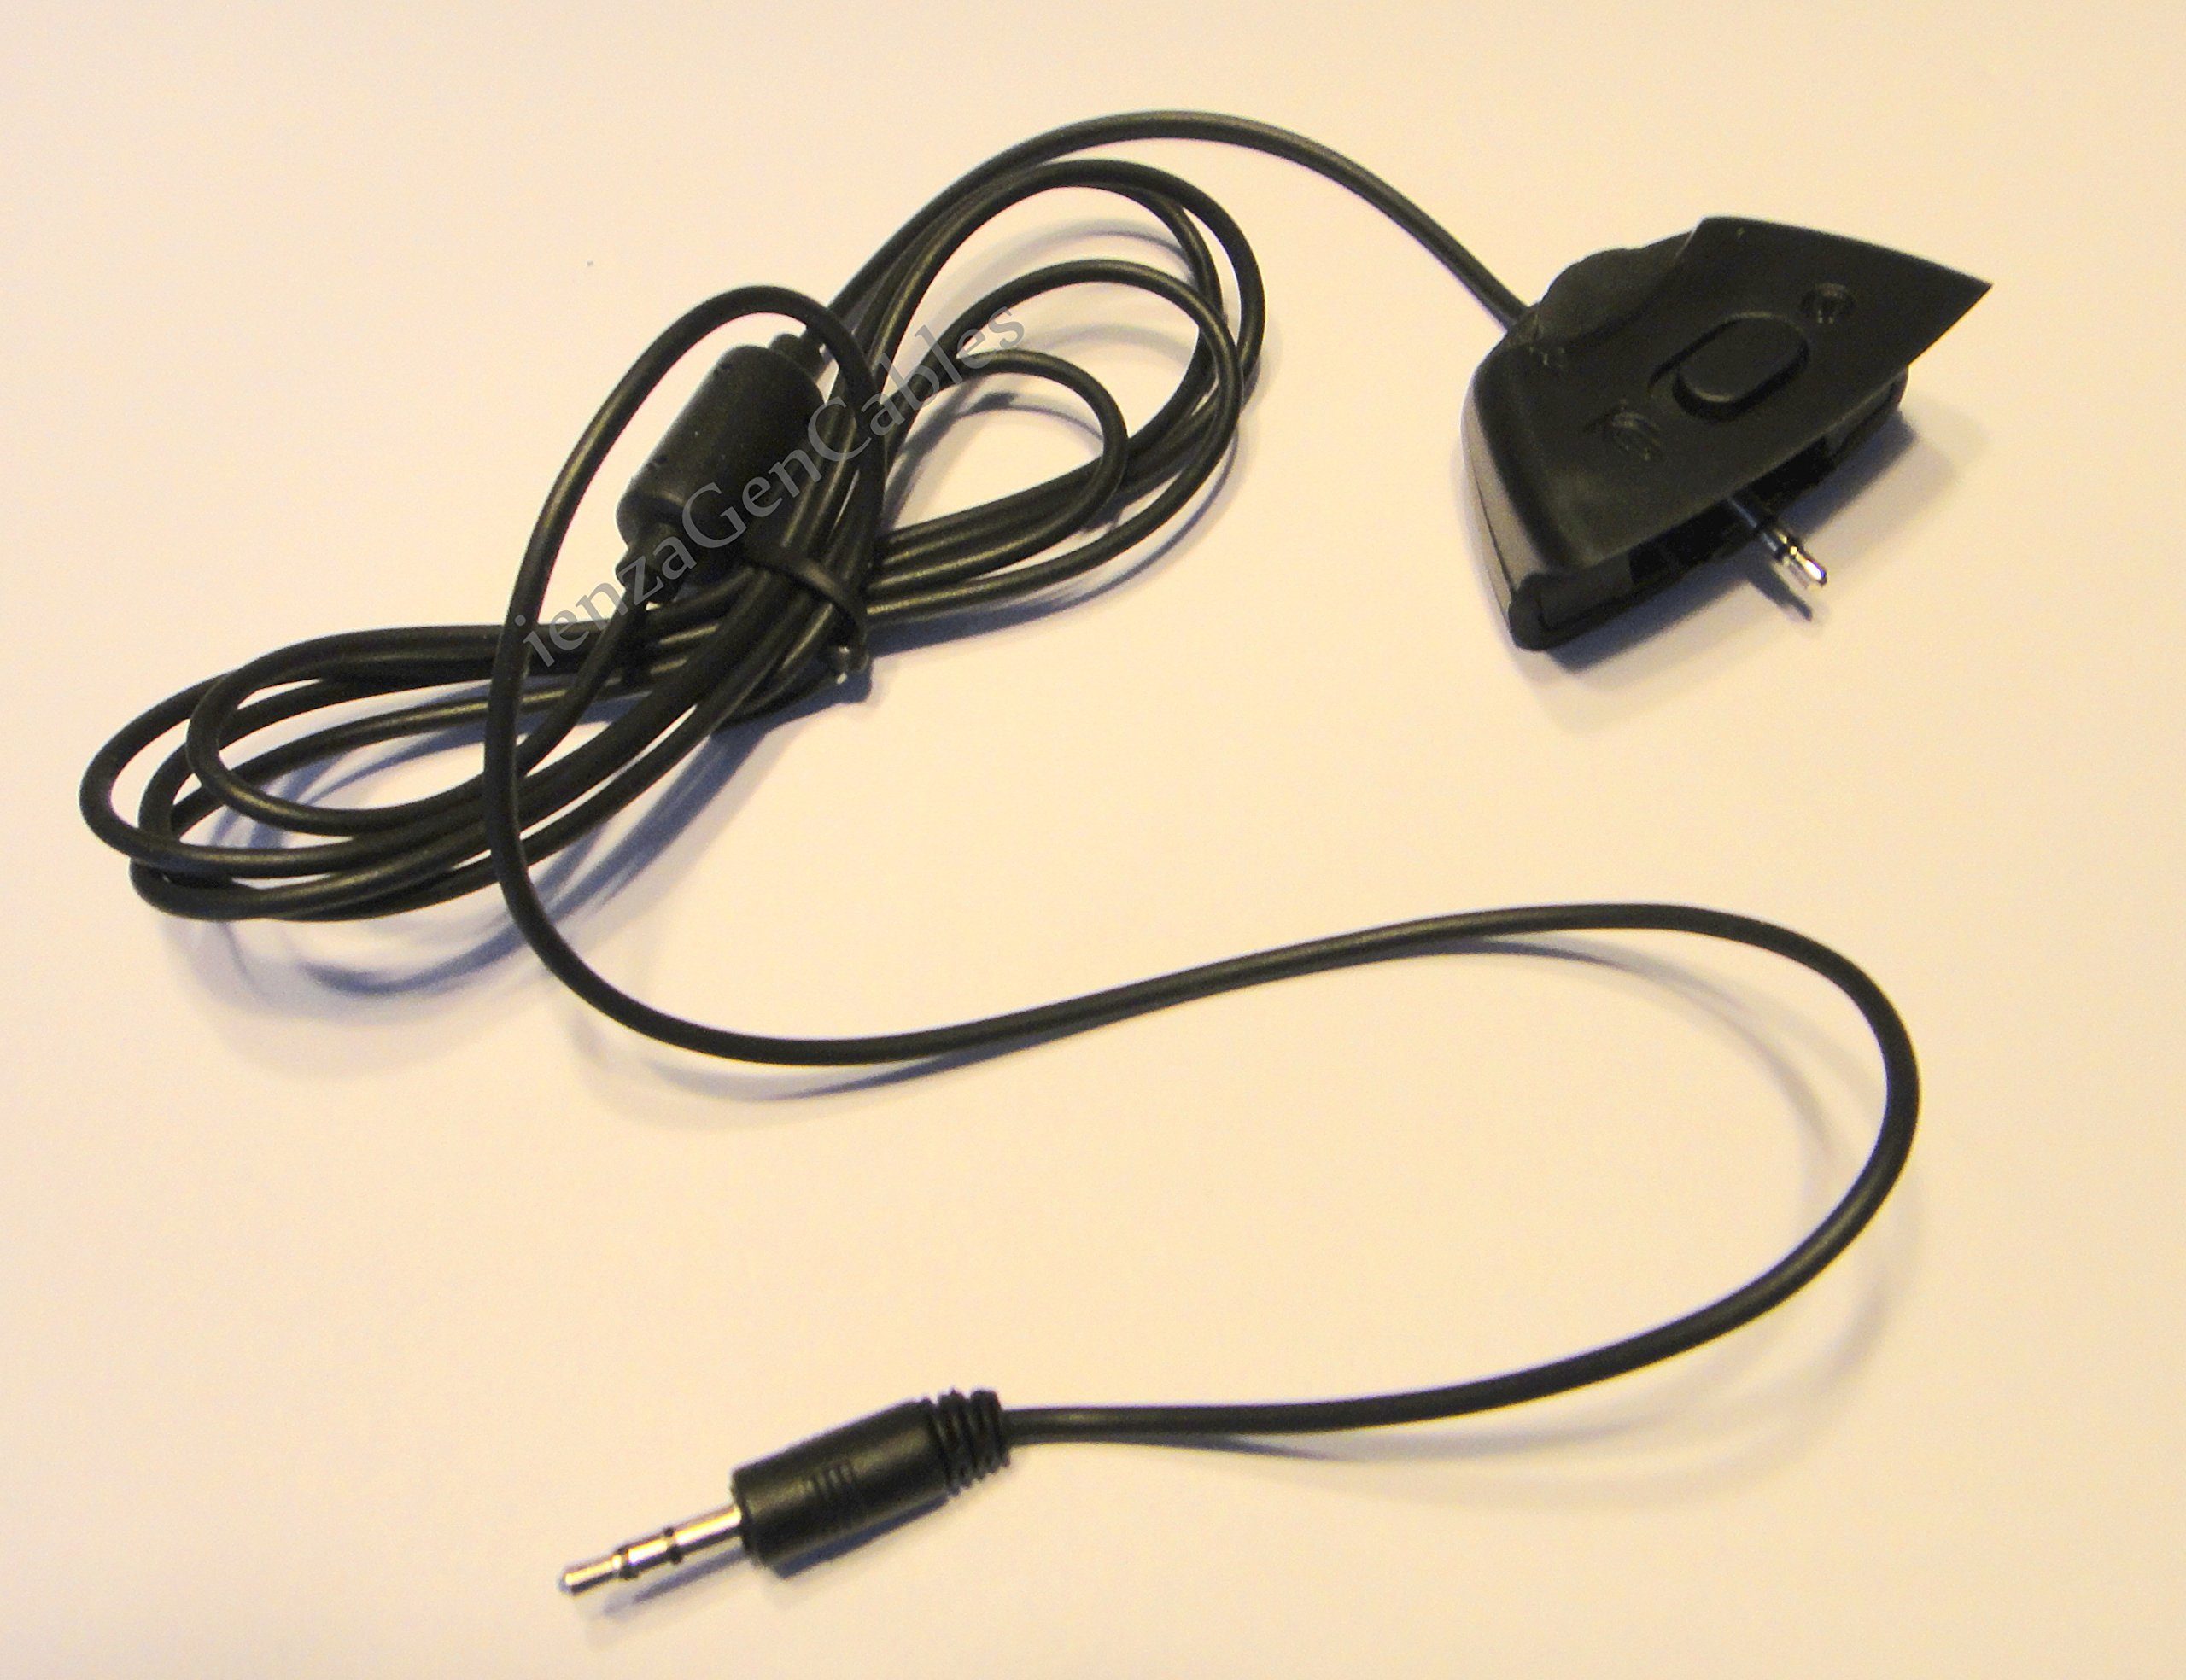 New! ienza® 2.5mm to 3.5mm Xbox 360 Live Talkback / Chat Cable Puck for Tritton® Headsets